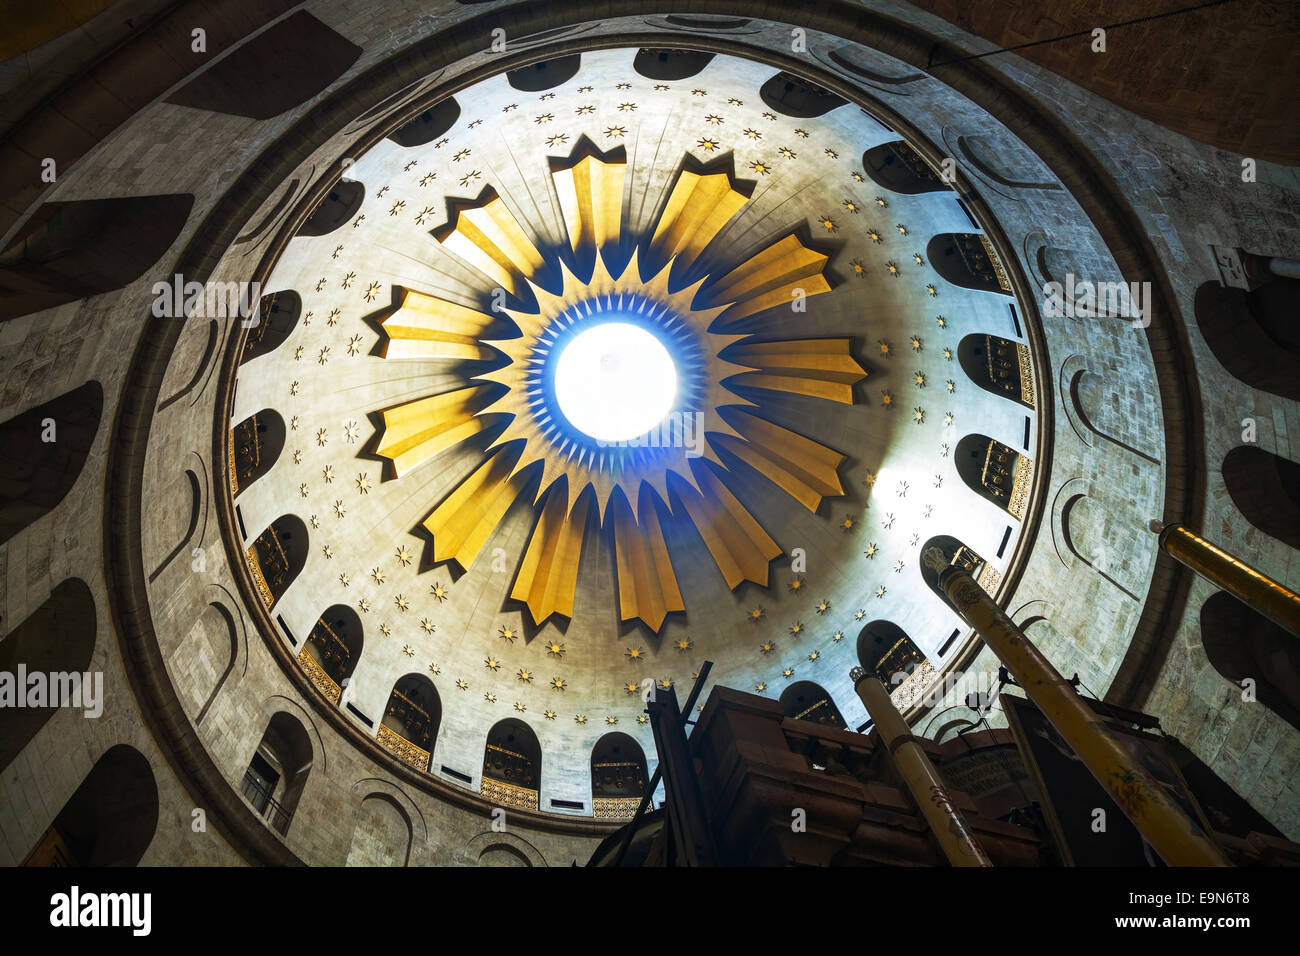 Interior of the Church of Holy Sepulchre - Stock Image